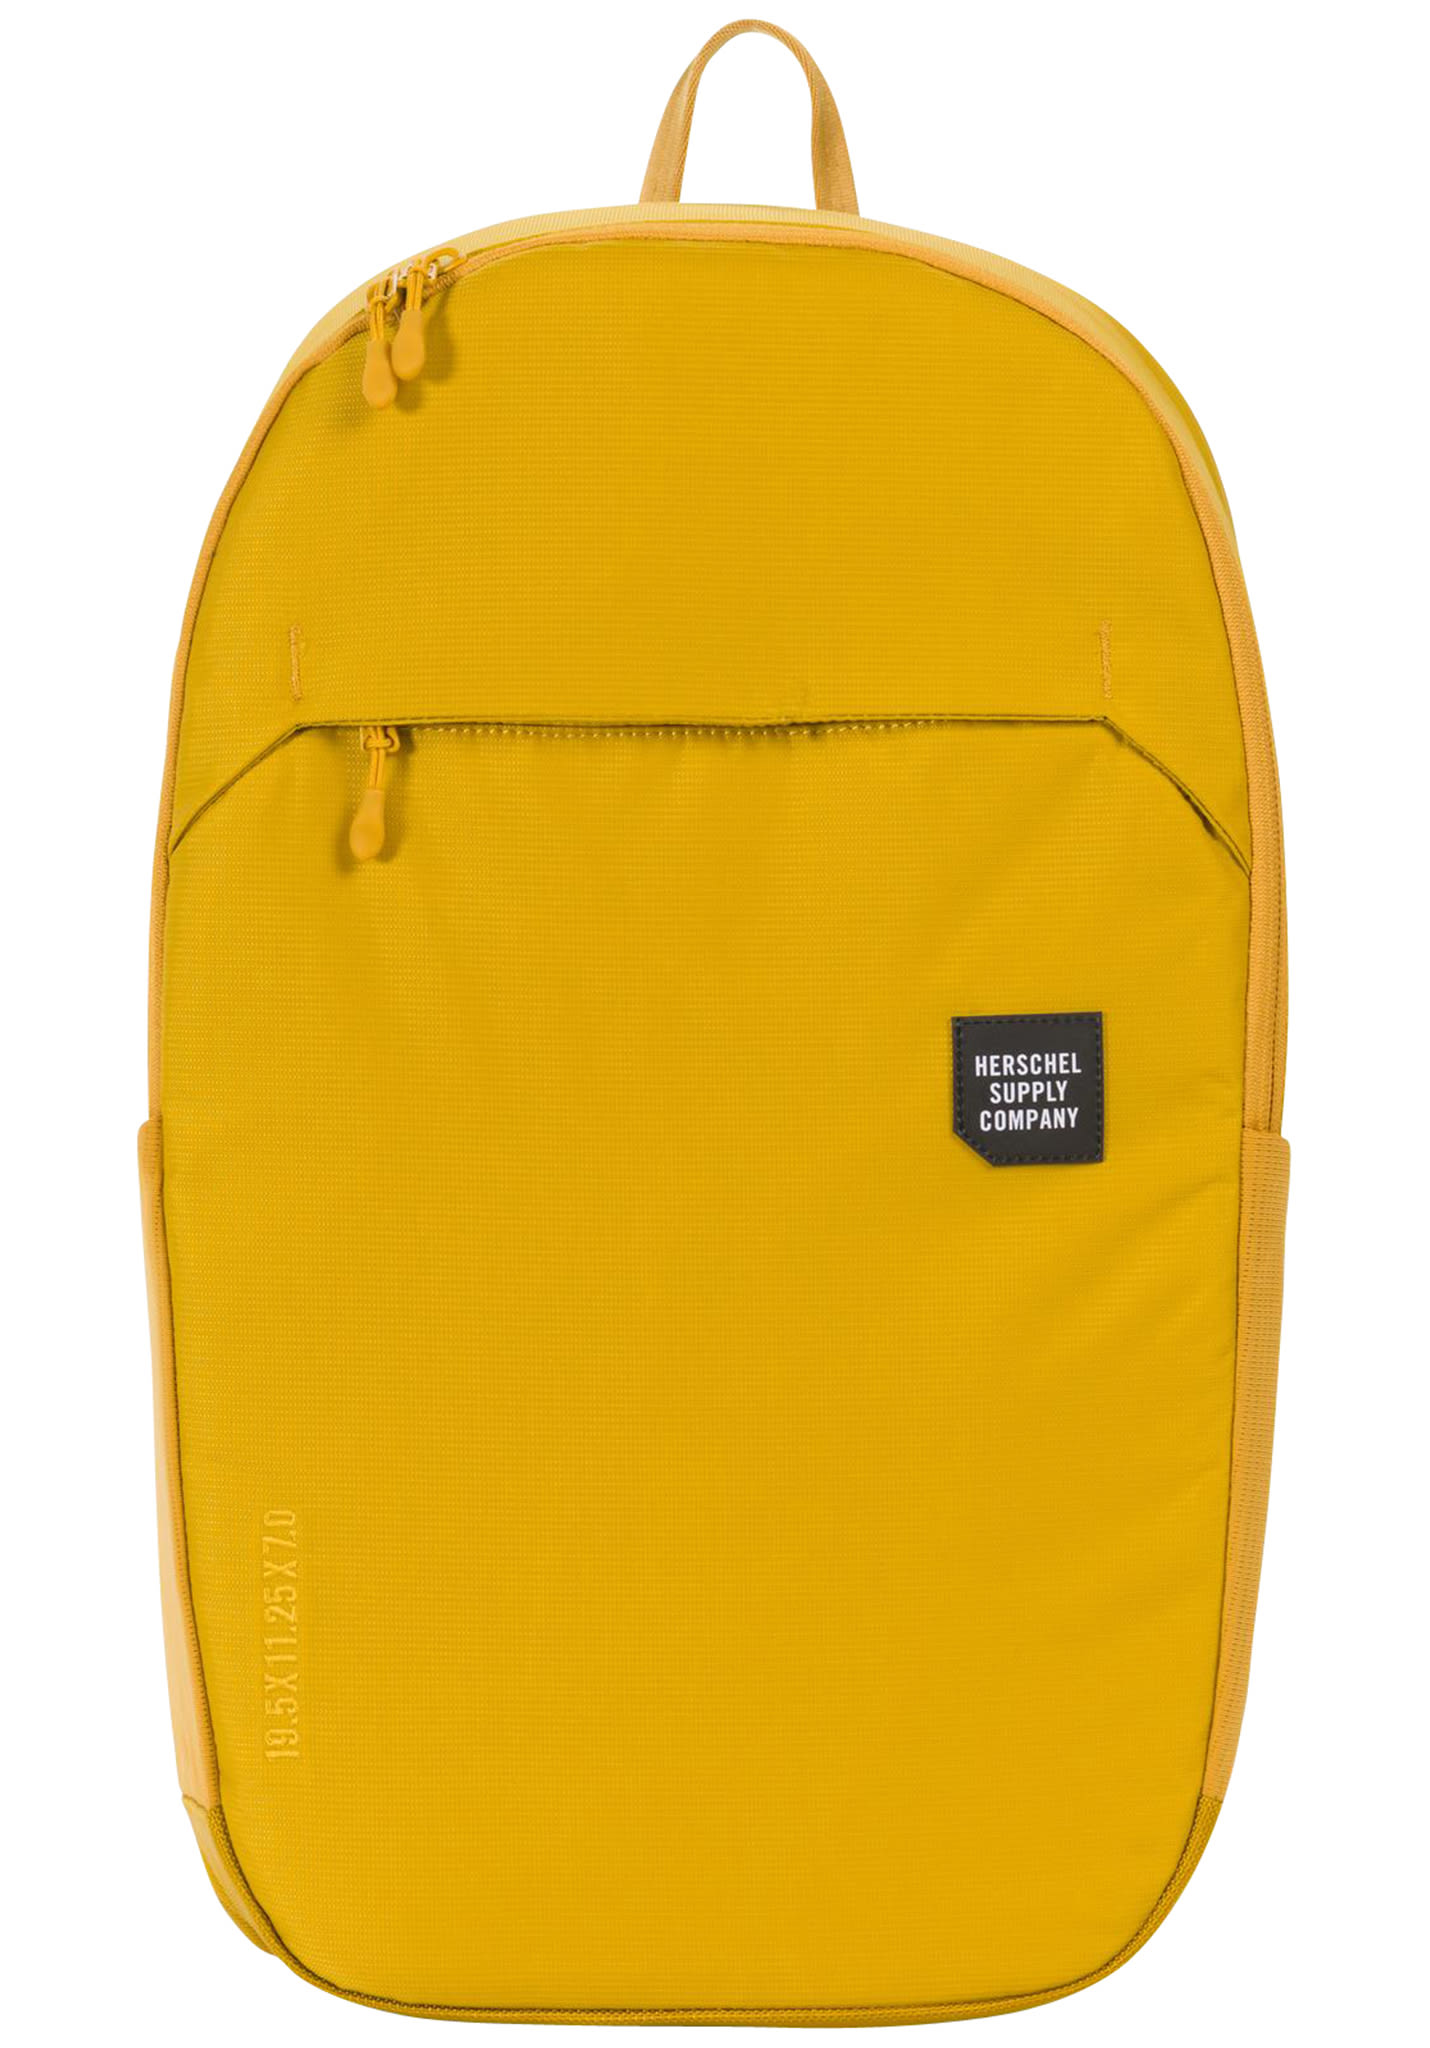 25dcfb27645 Herschel SUPPLY CO Mammoth Large 23L - Backpack - Yellow - Planet Sports